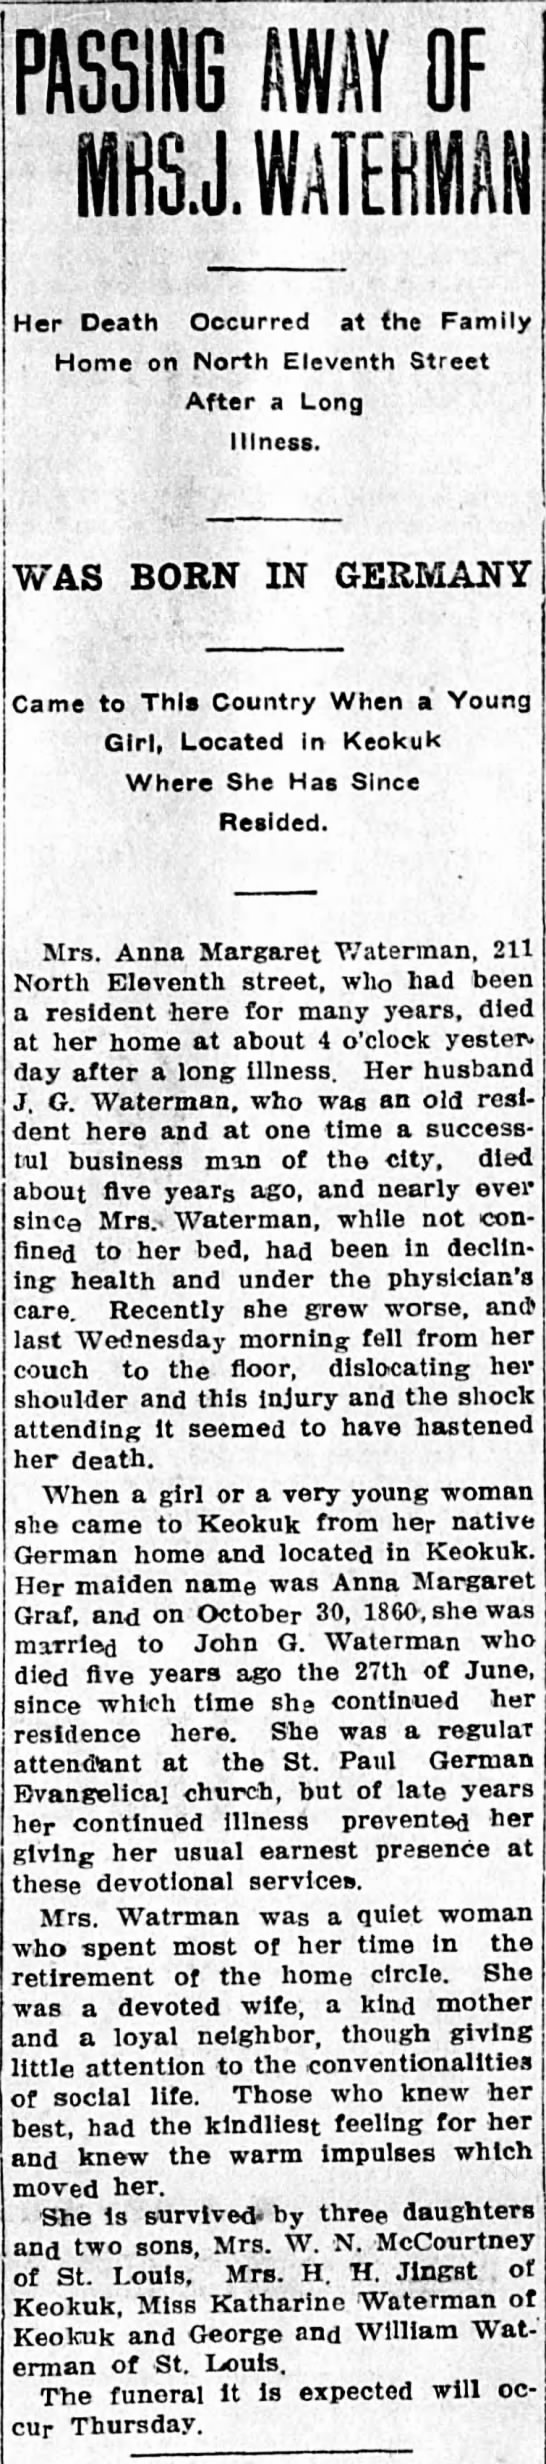 Obituary: Waterman, Anna Margaret (nee Graf) d. 1914